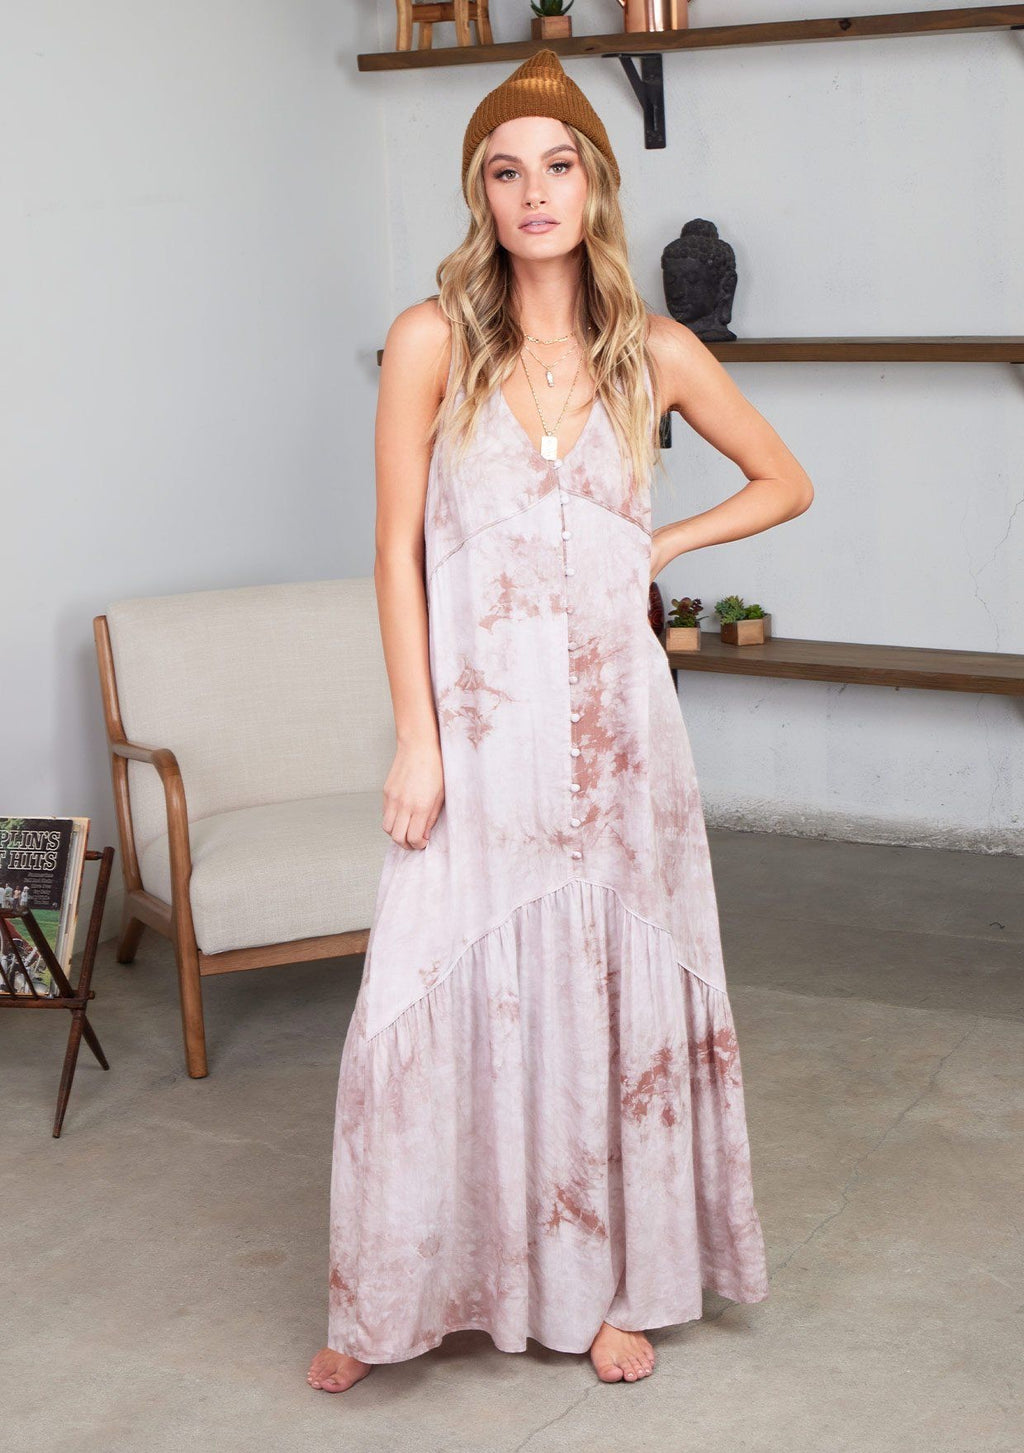 Description Maxi Length  Sleeveless Tiered Shirt V-Neck Button Front Variations in the Tie-Dye Print Unlined  Color:  Sand